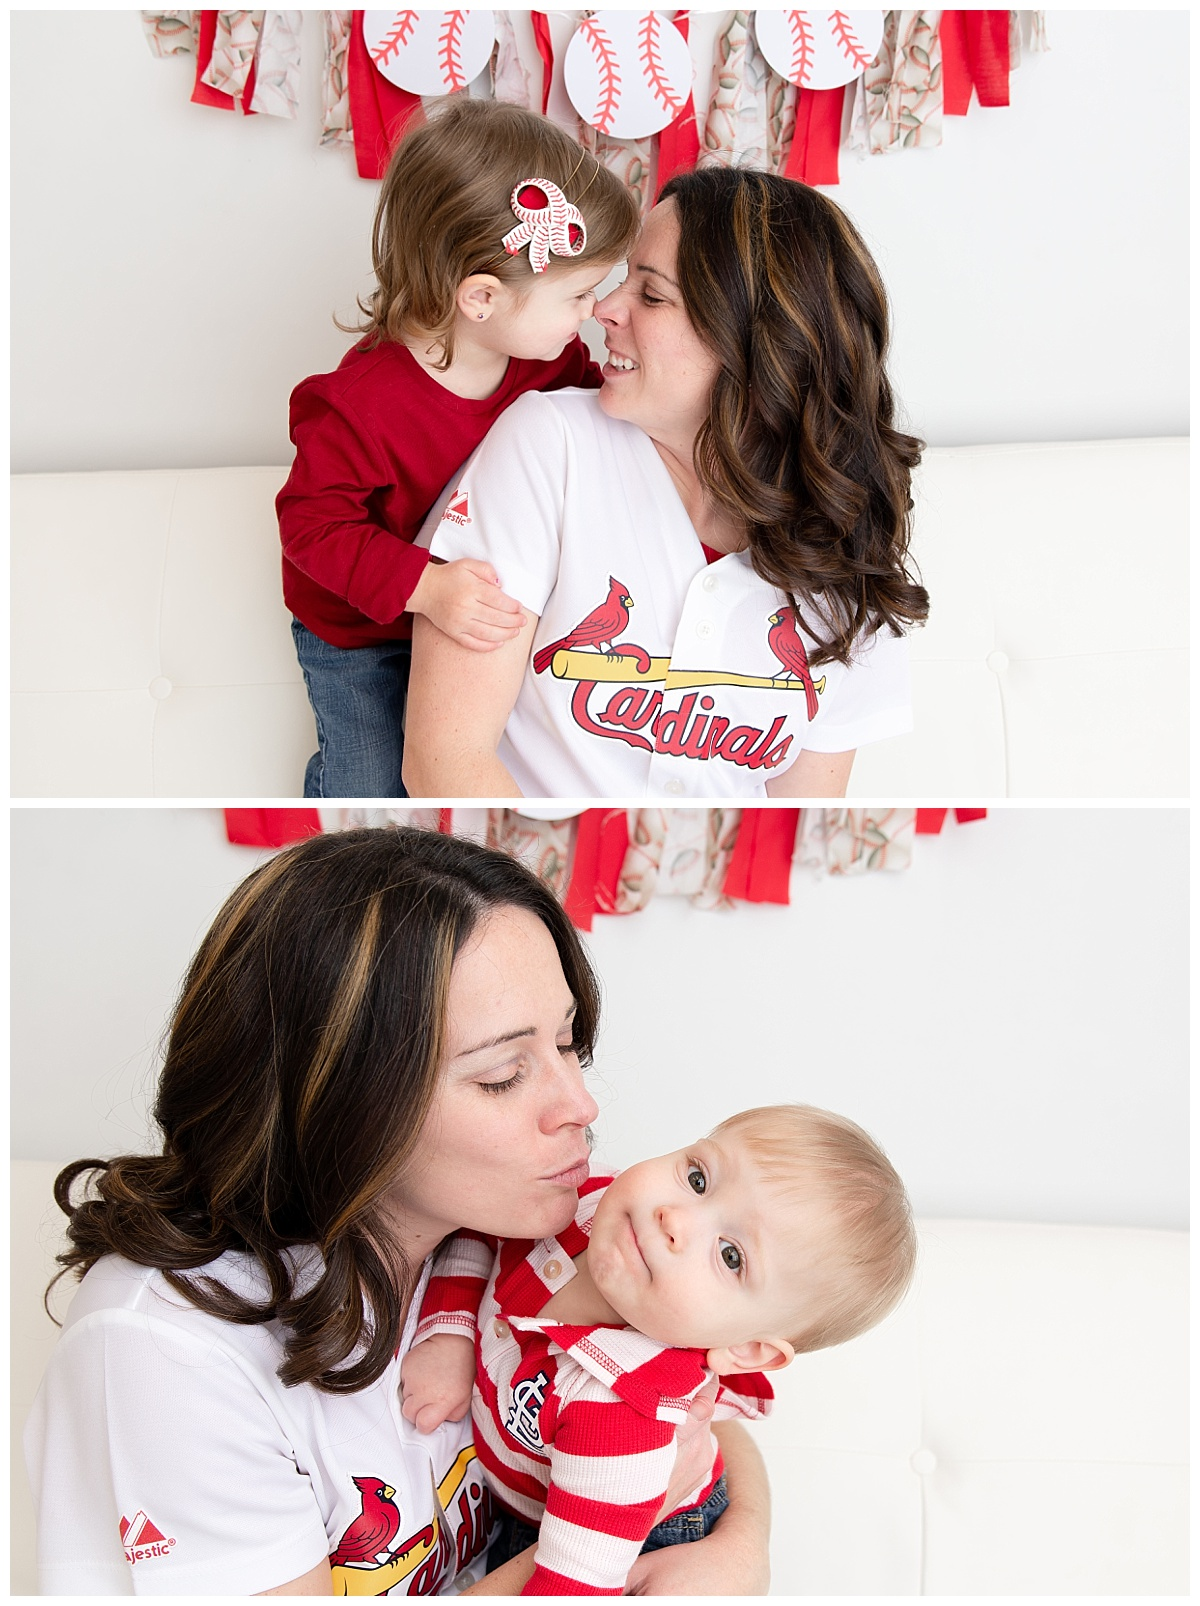 st-louis-family-photographer-st-louis-cardinals-family-pictures-mom-with-kids.jpg